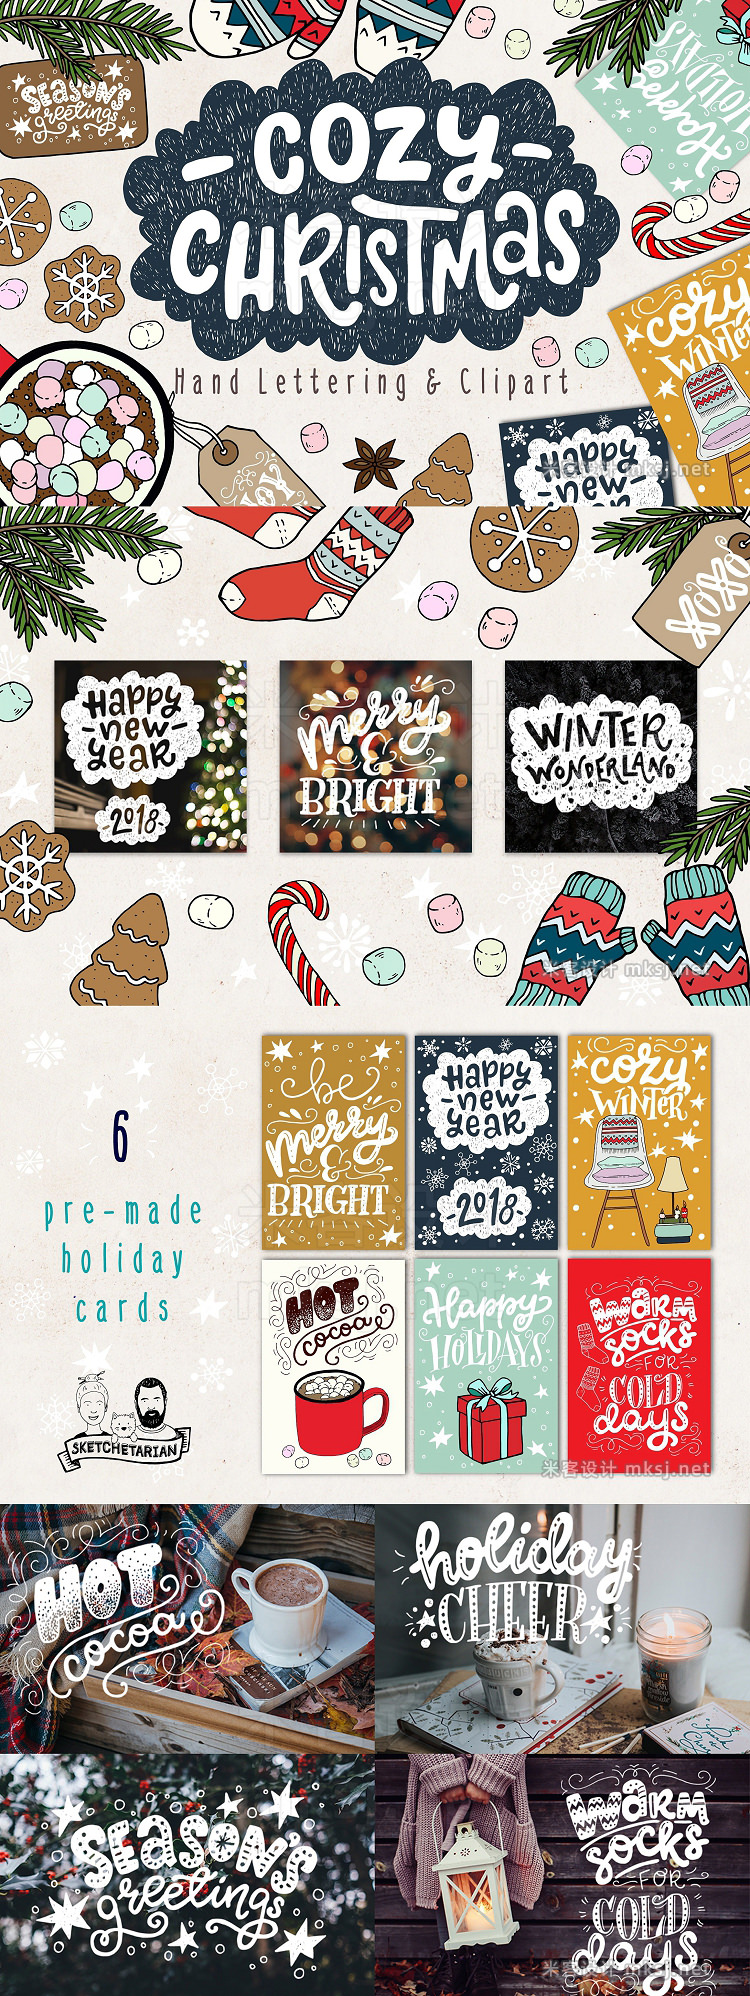 png素材 Cozy Christmas Lettering Clipart